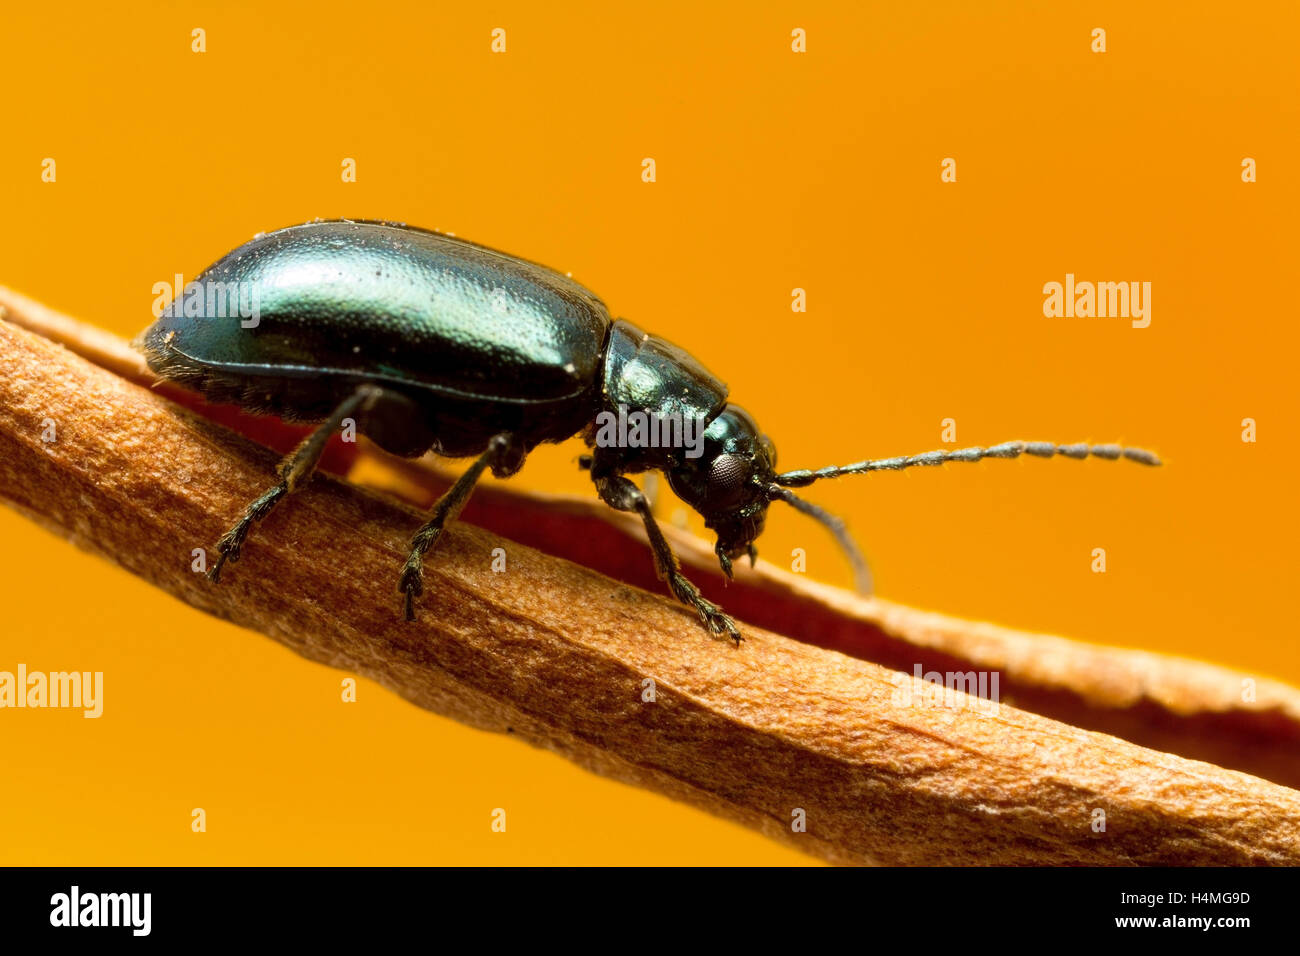 Green Flea beetle: they are called flea beetles because when in danger, they jump like fleas. Macro photo at around - Stock Image